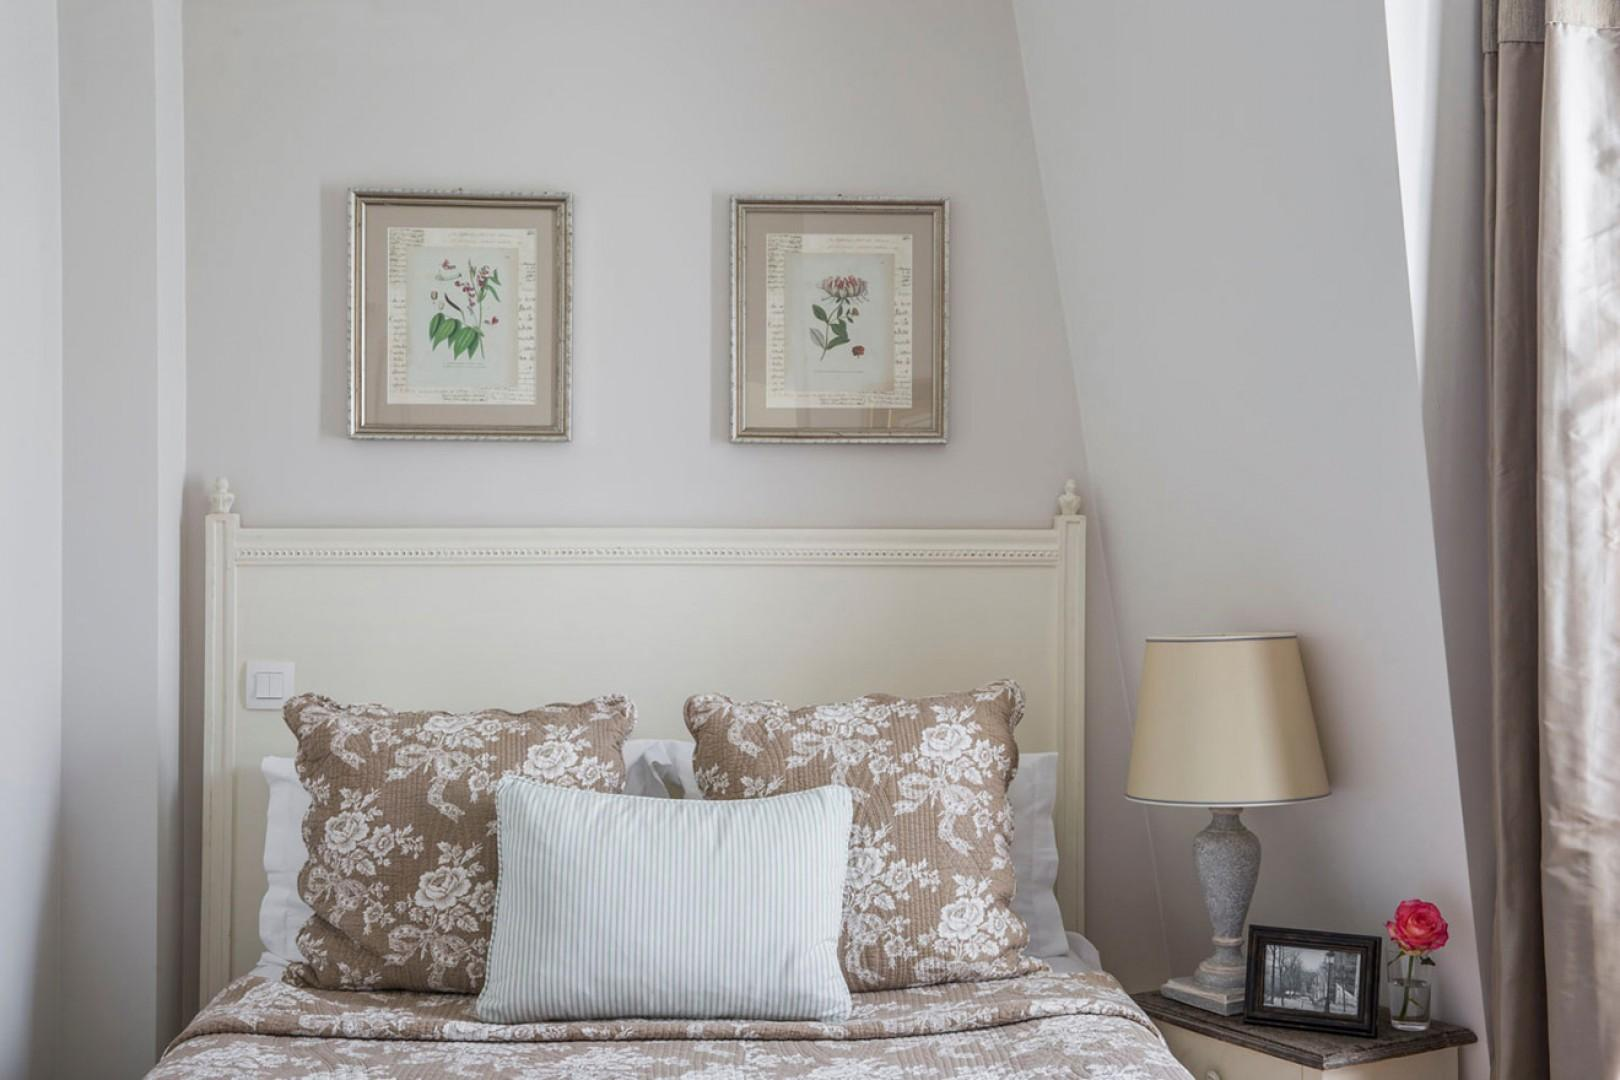 Bedroom 2 is tastefully decorated French-style.